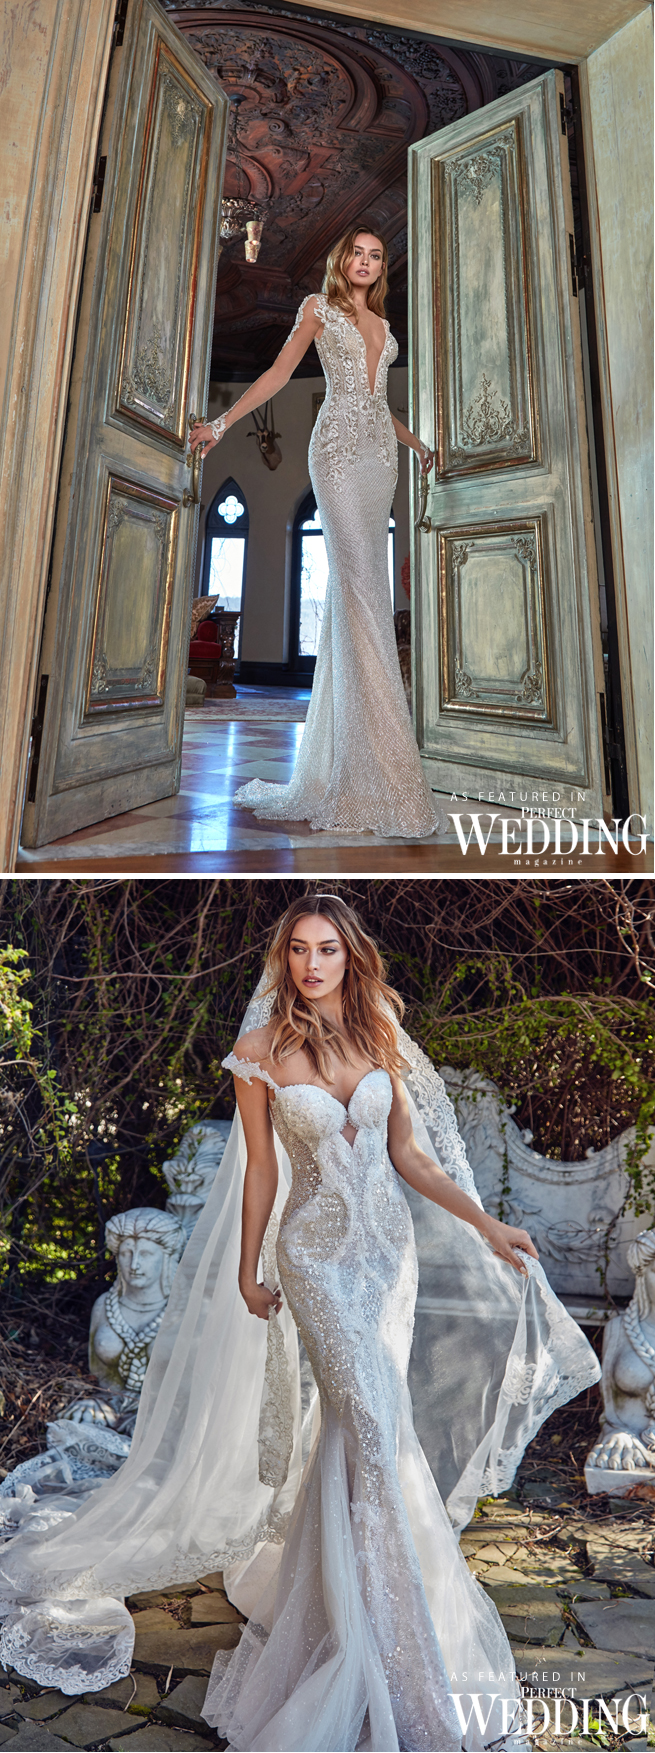 Galia Lahav, Le Secret Royal, Couture Bride, Bridal Gowns, Perfect Wedding Magazine, Perfect Wedding Blog